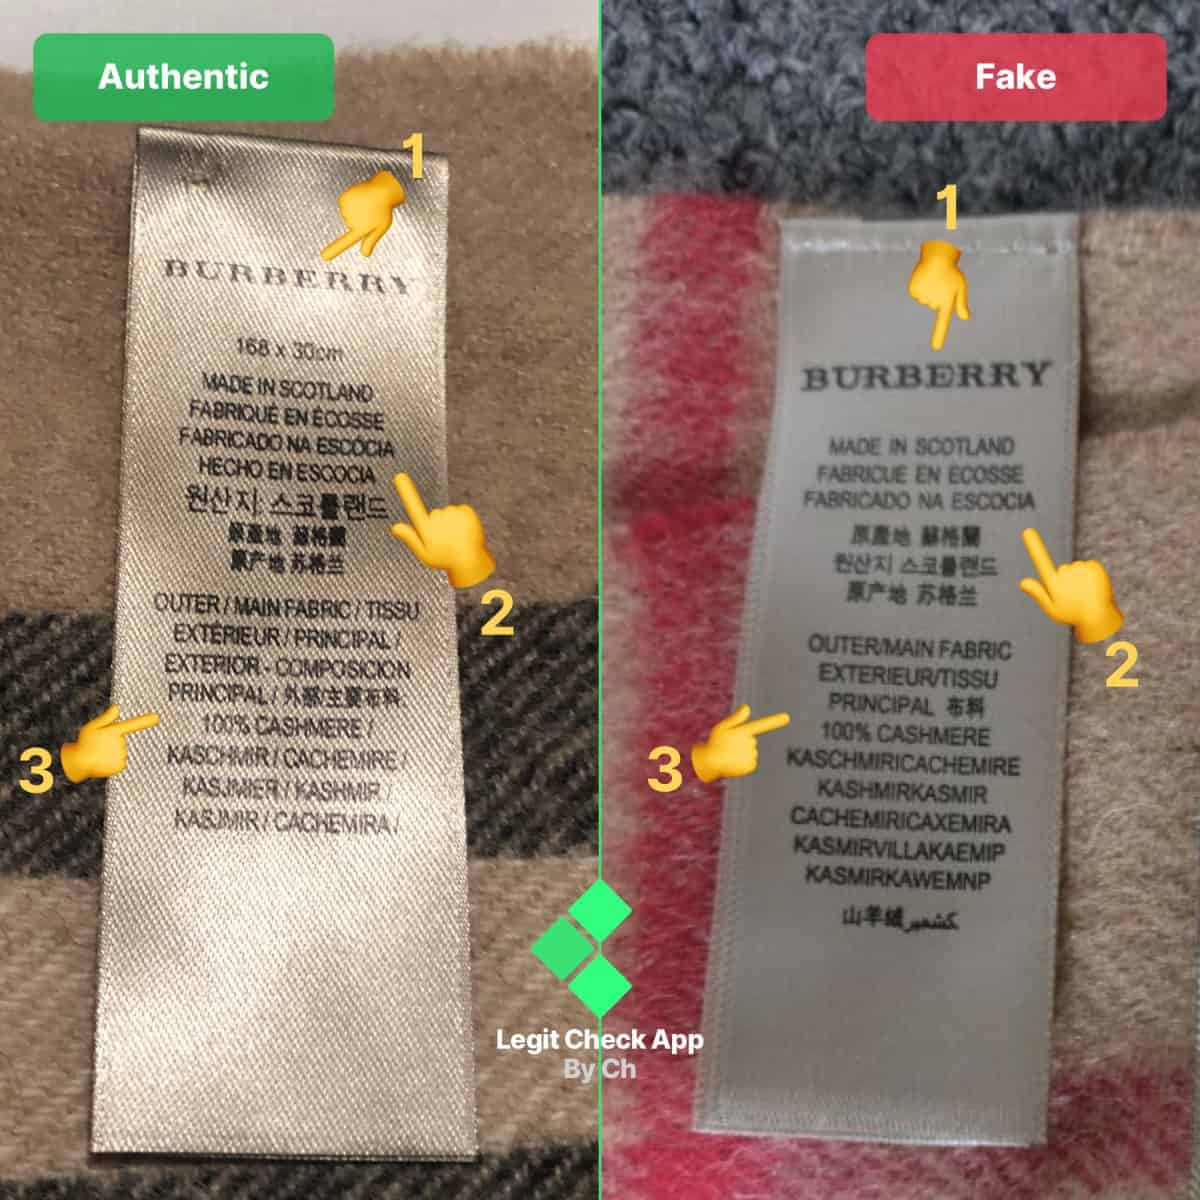 real vs fake burberry scarf